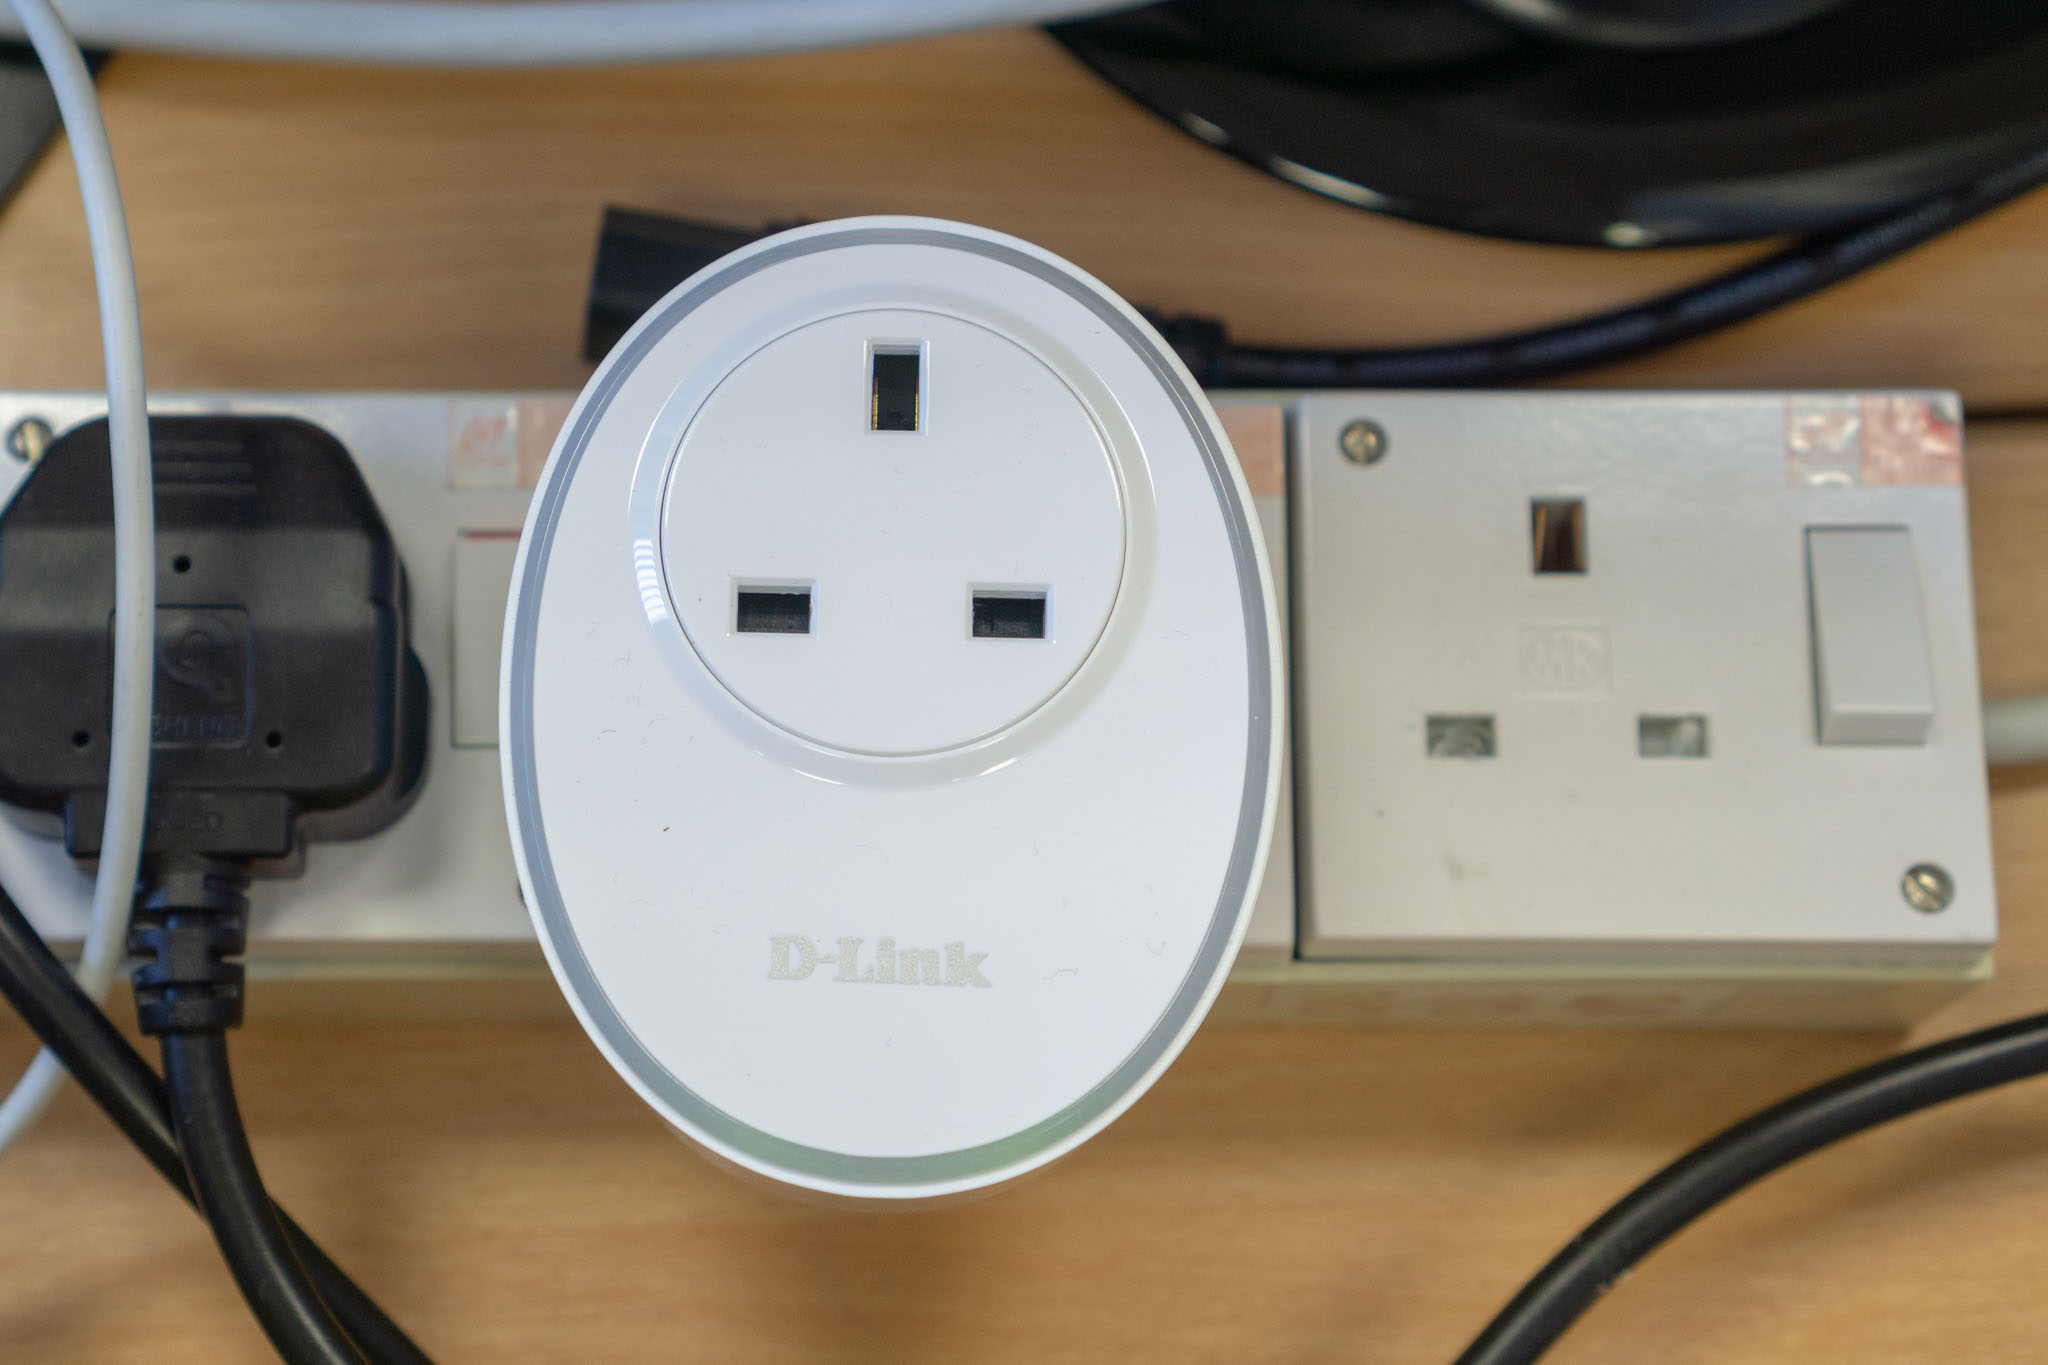 D Link Wi Fi Smart Plug Zit Sengs Blog Wiring Its Best That The Connected Appliance Is Dumb With A Conventional Switch Can Be Left In On Position So